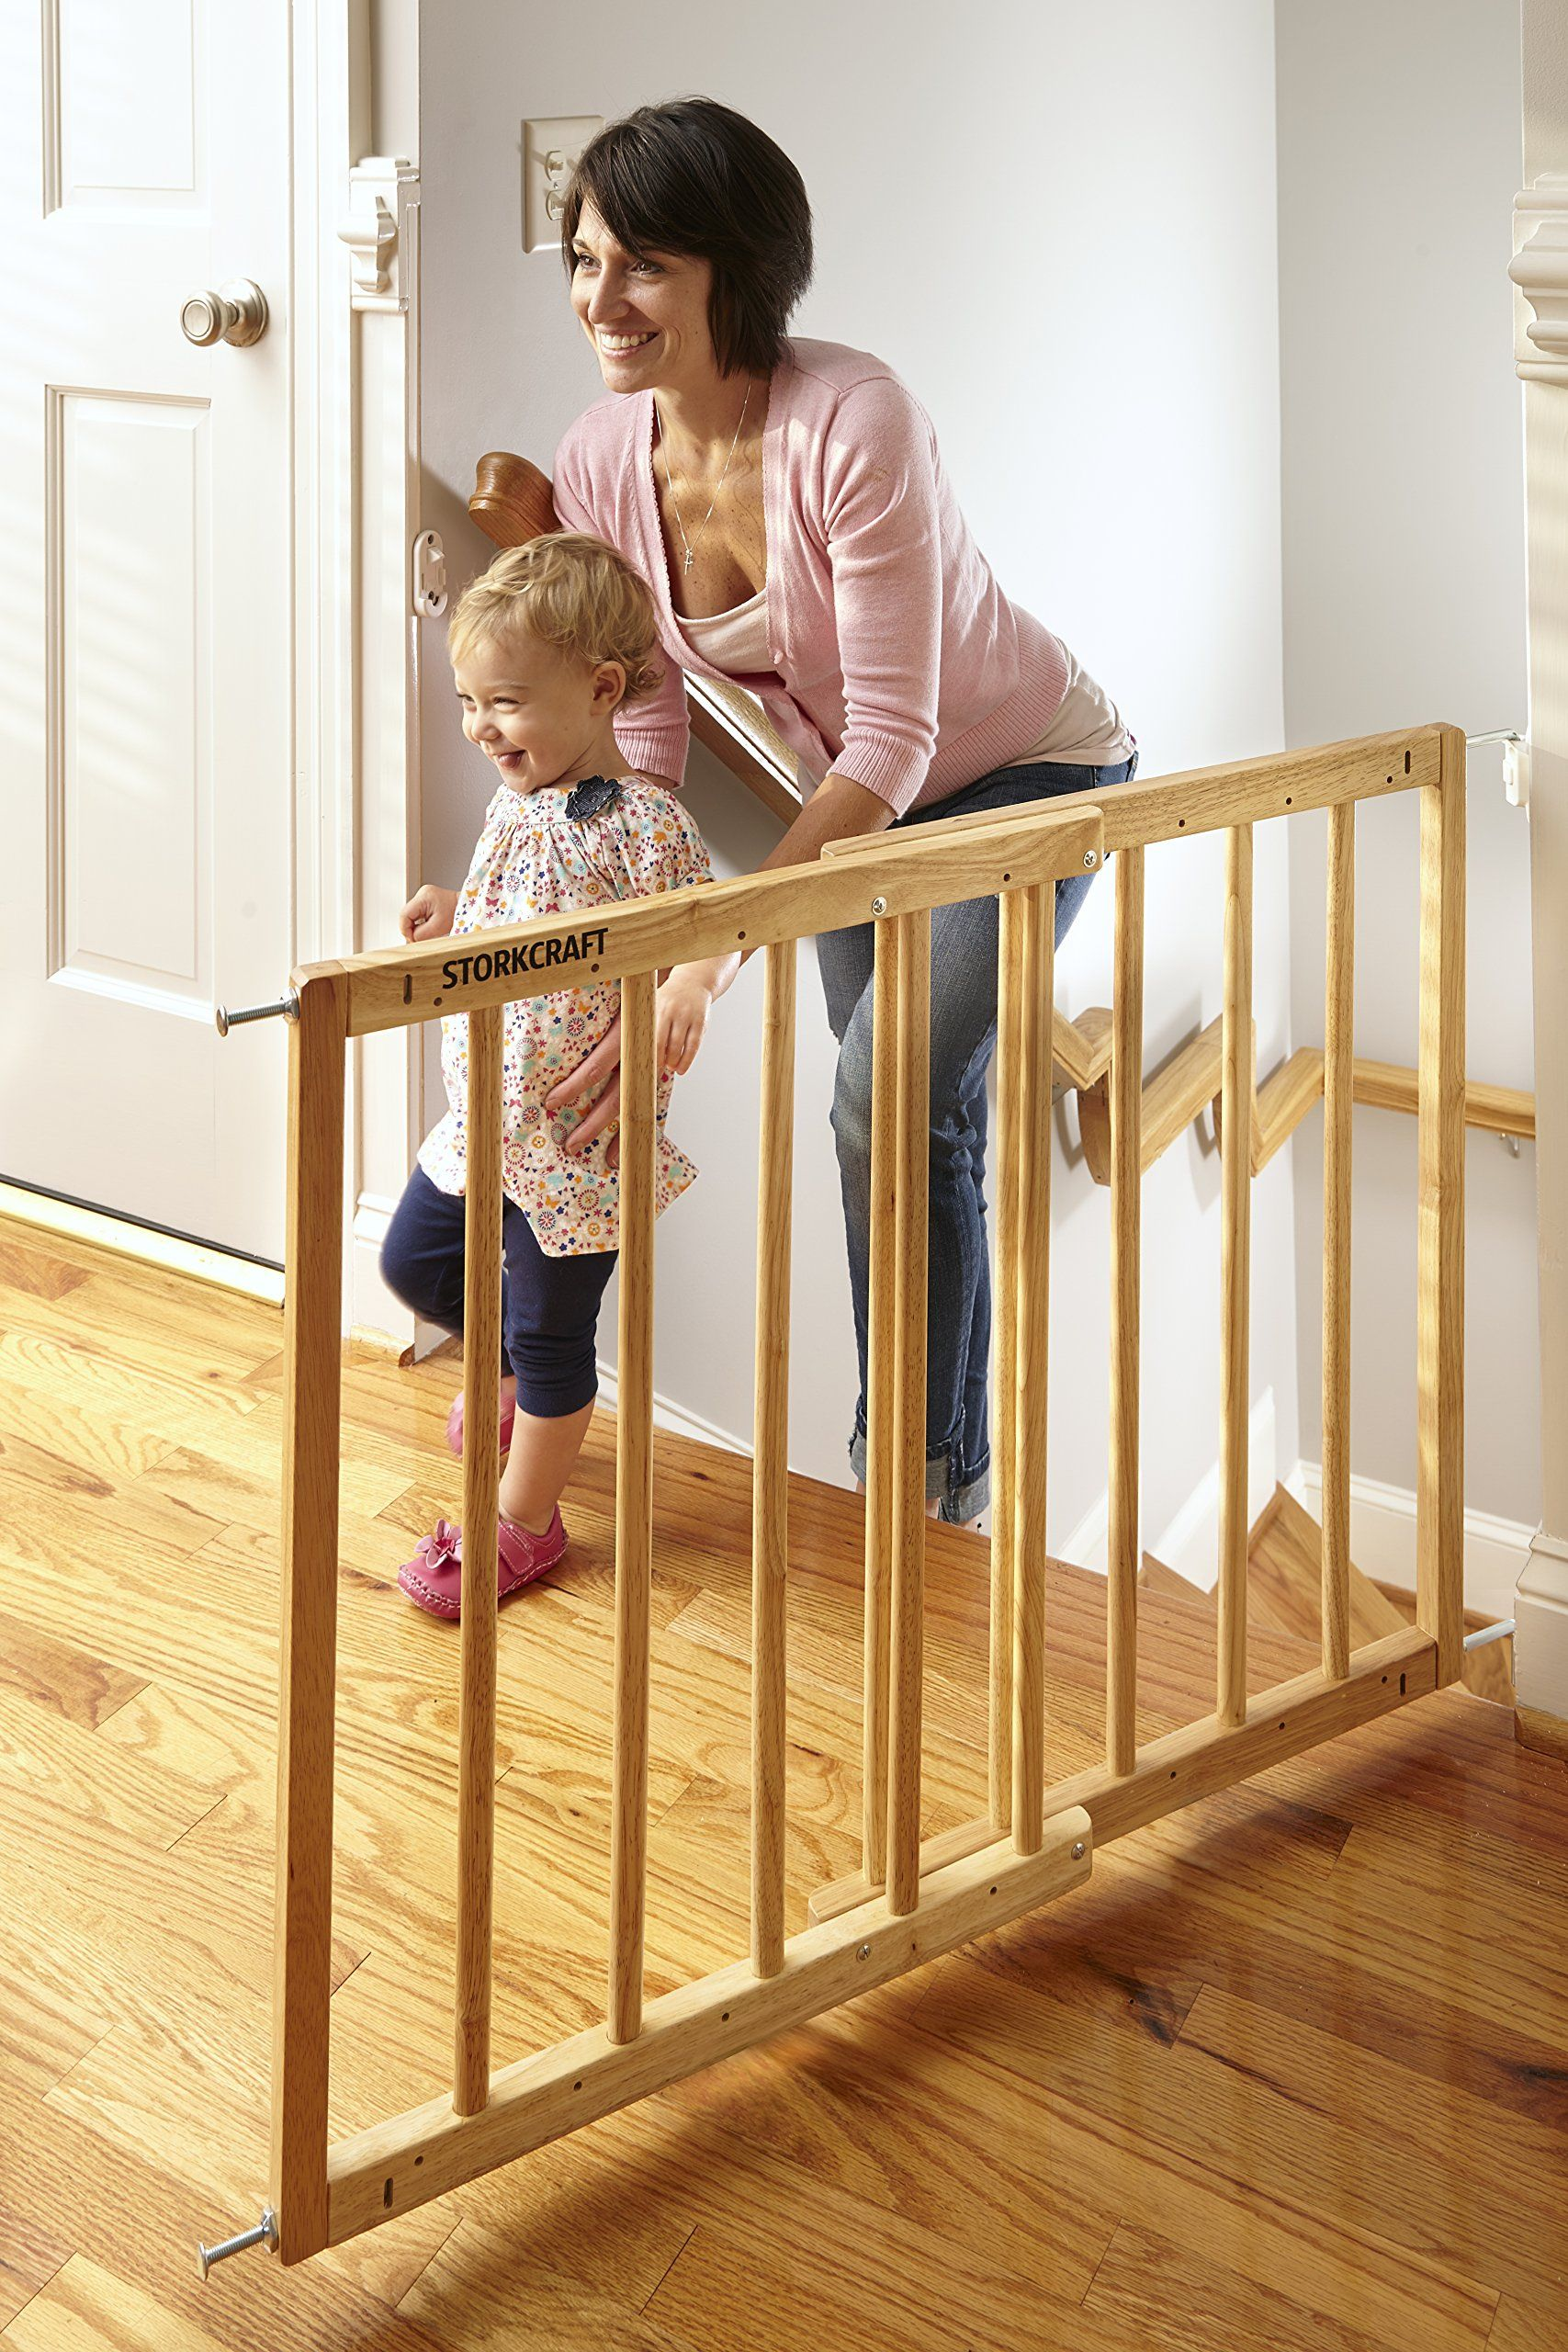 Storkcraft Easy Walkthru Wooden Safety Gate Natural Adjustable Baby Safety Gate For Doorways And Stairs Great For Chil Baby Safety Gate Baby Safety Patio Doors